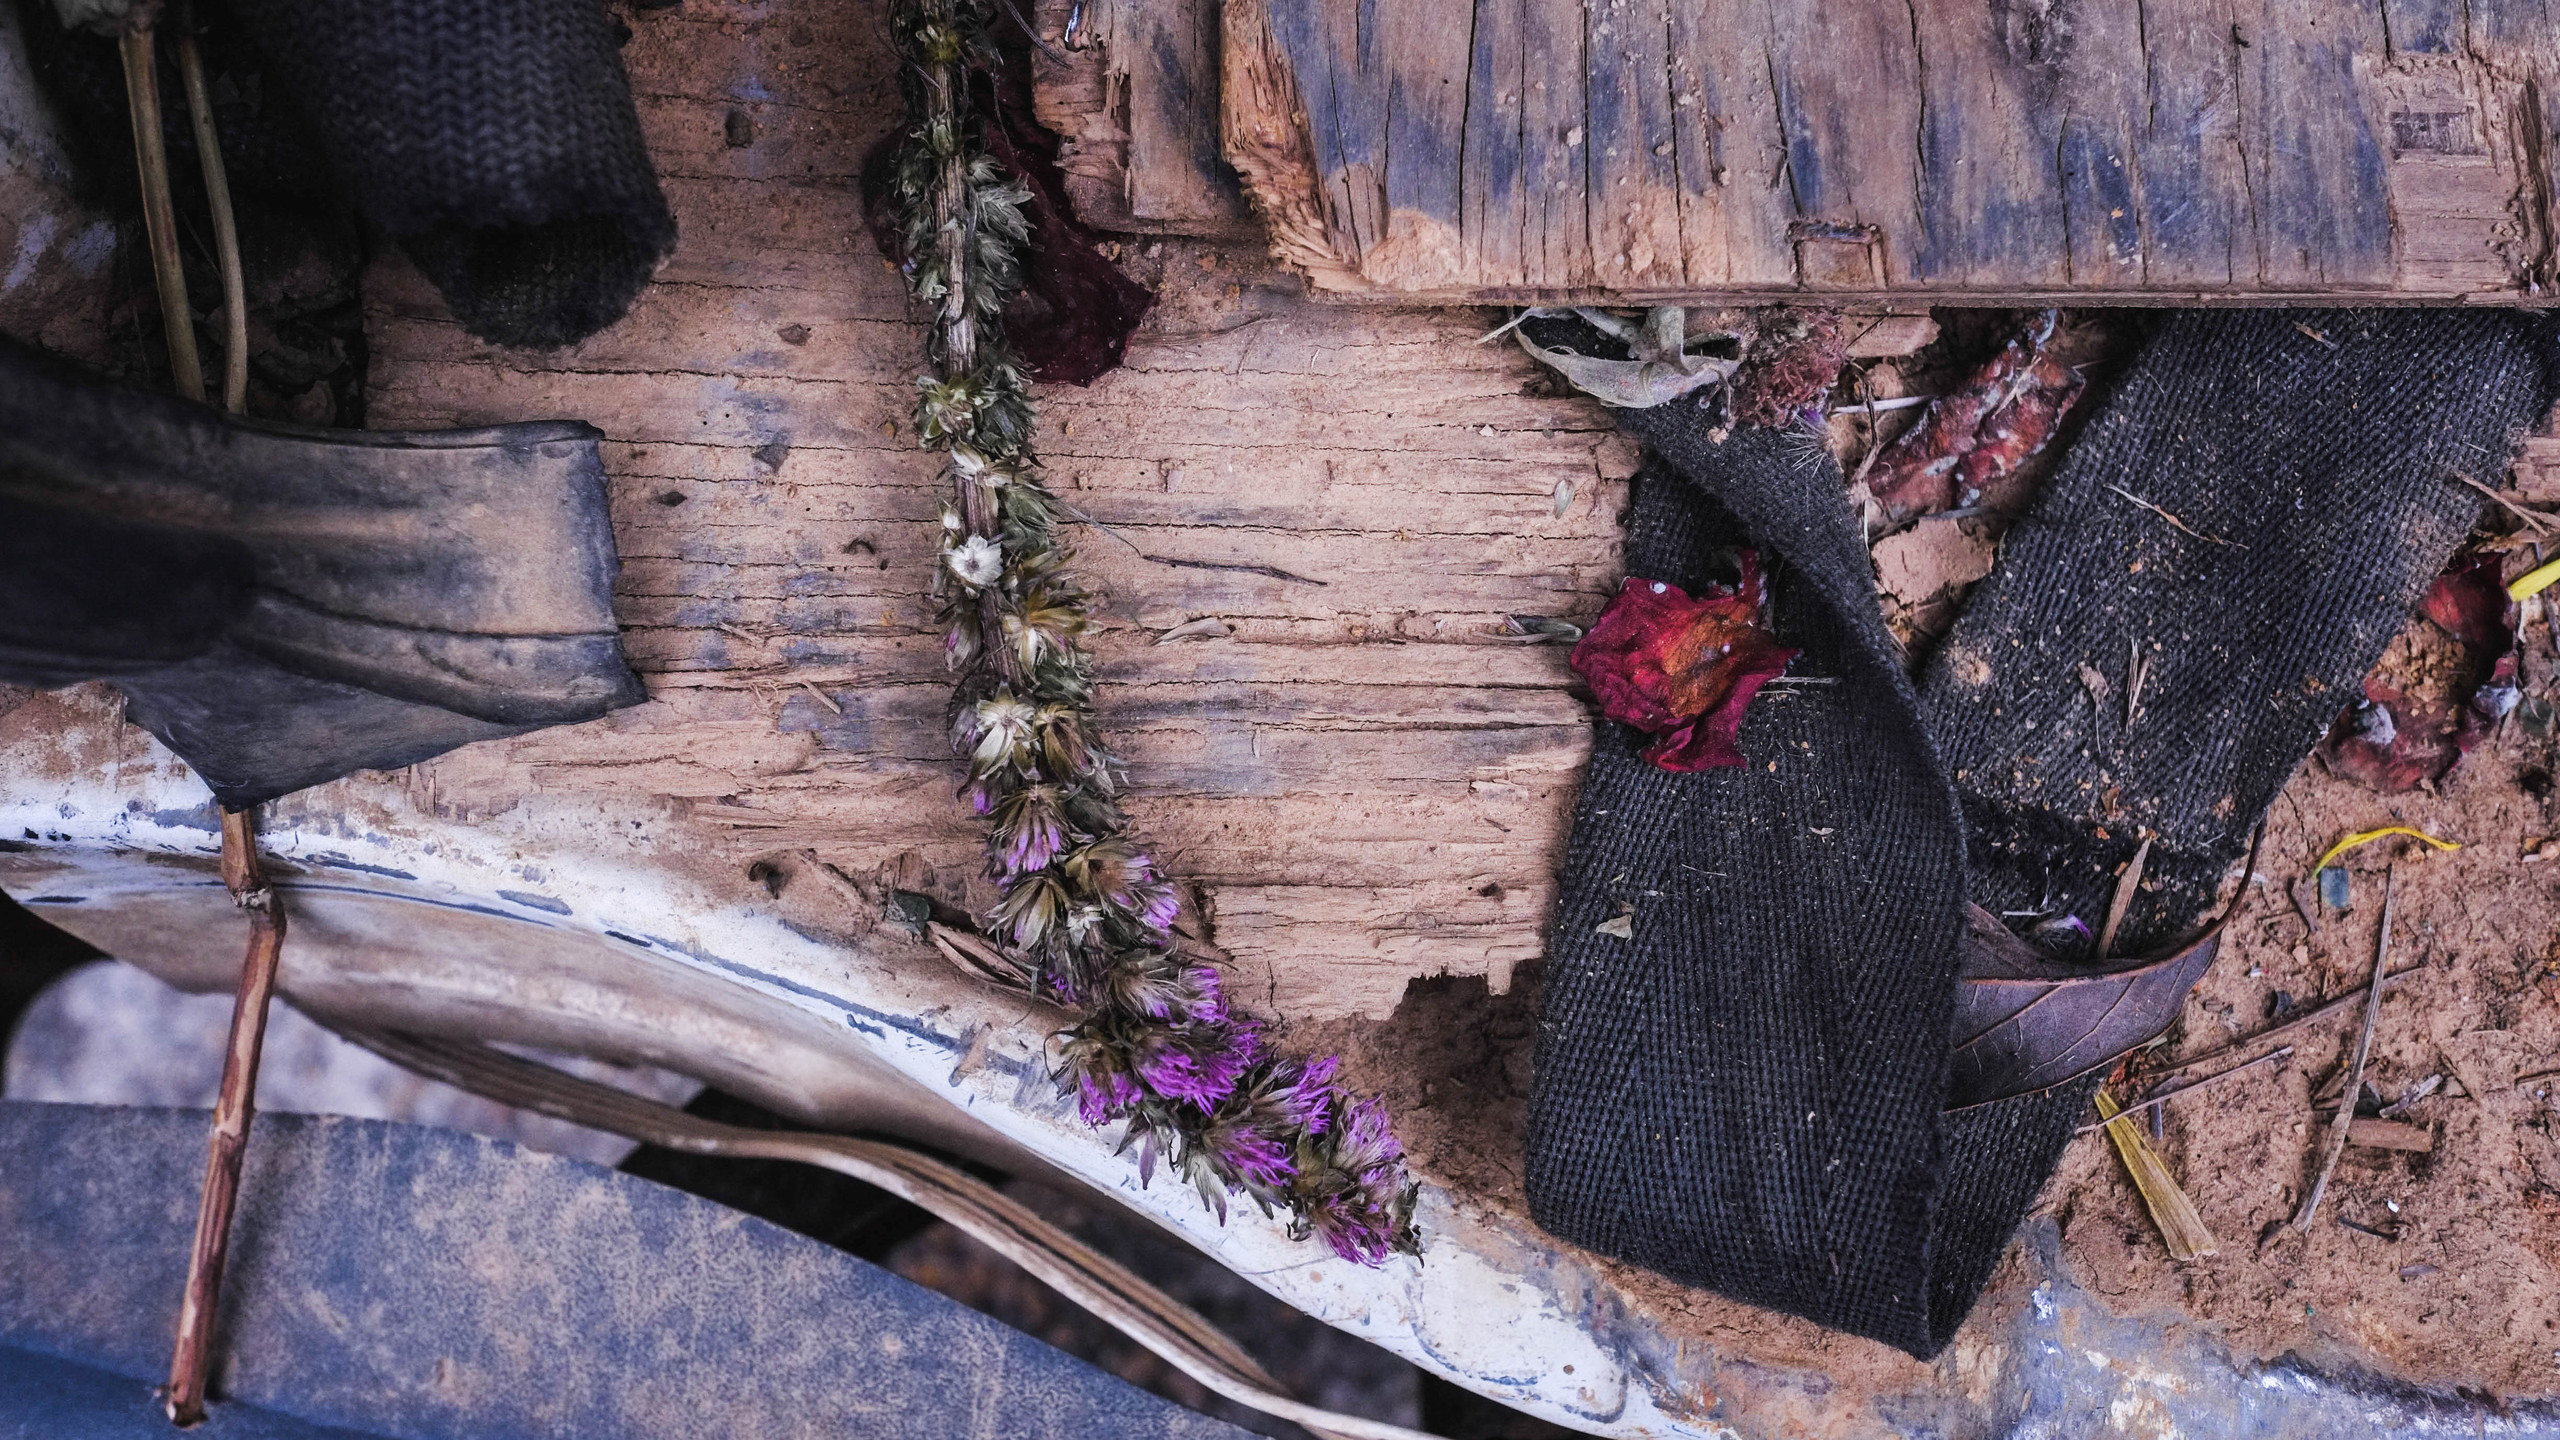 Dried funeral flowers found in the back of the van amid the tent poles and chairs.